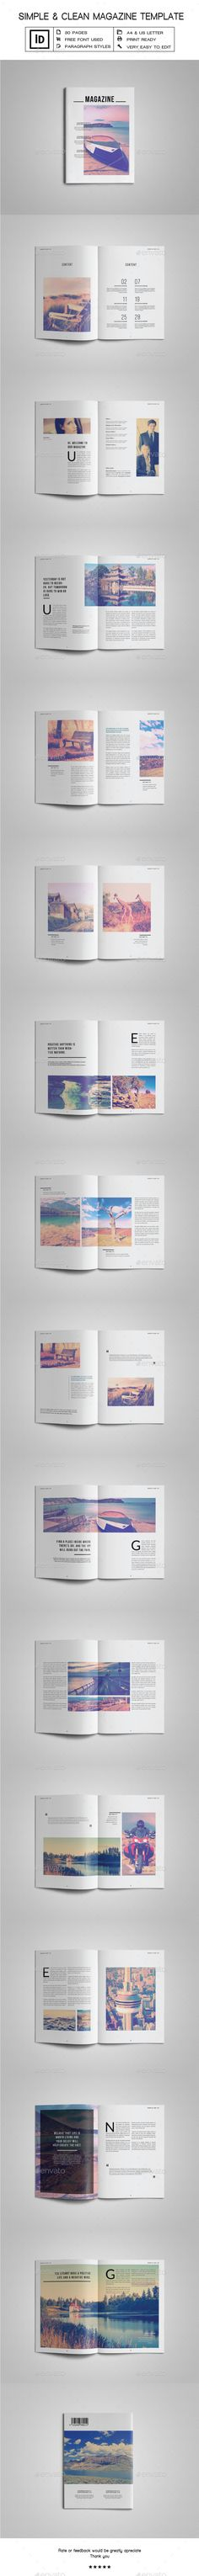 Simple & Clean Magazine Template InDesign INDD. Download here: https://graphicriver.net/item/simple-clean-magazine-tempalte-iv/17449707?ref=ksioks